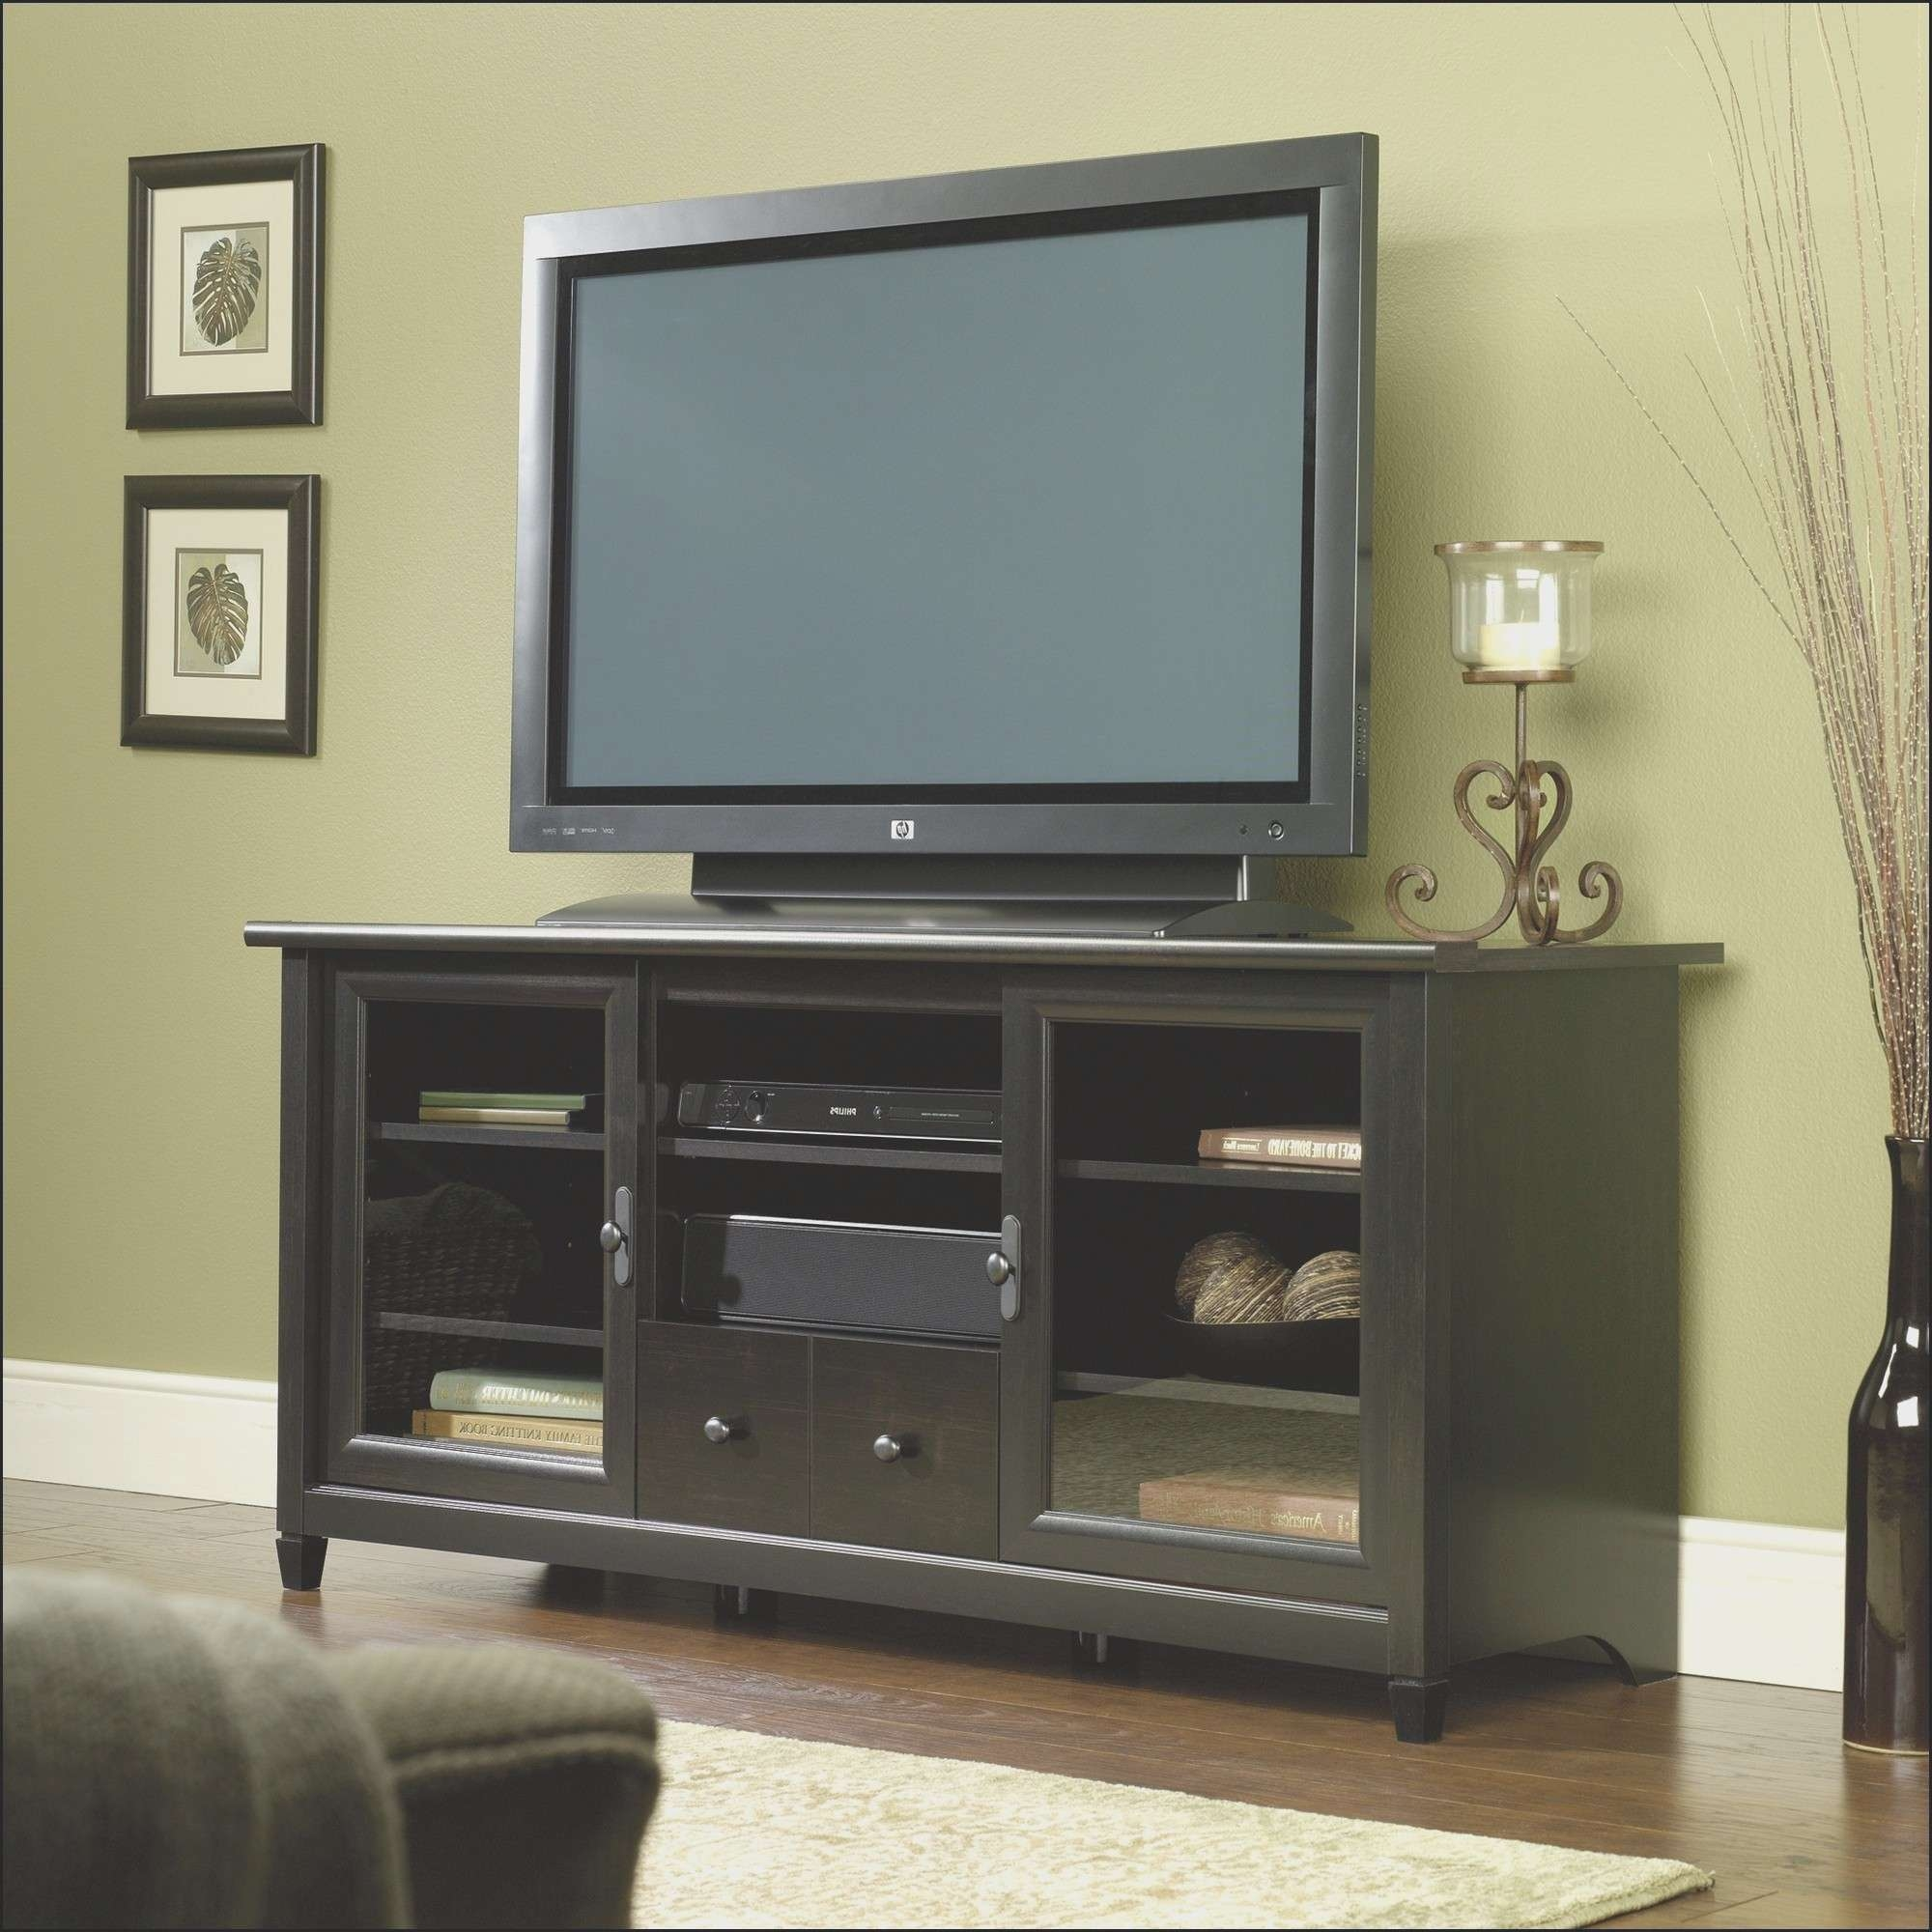 Fireplace : Amazing Fireplace Tv Stands Big Lots Style Home Design Throughout Big Lots Tv Stands (View 3 of 15)